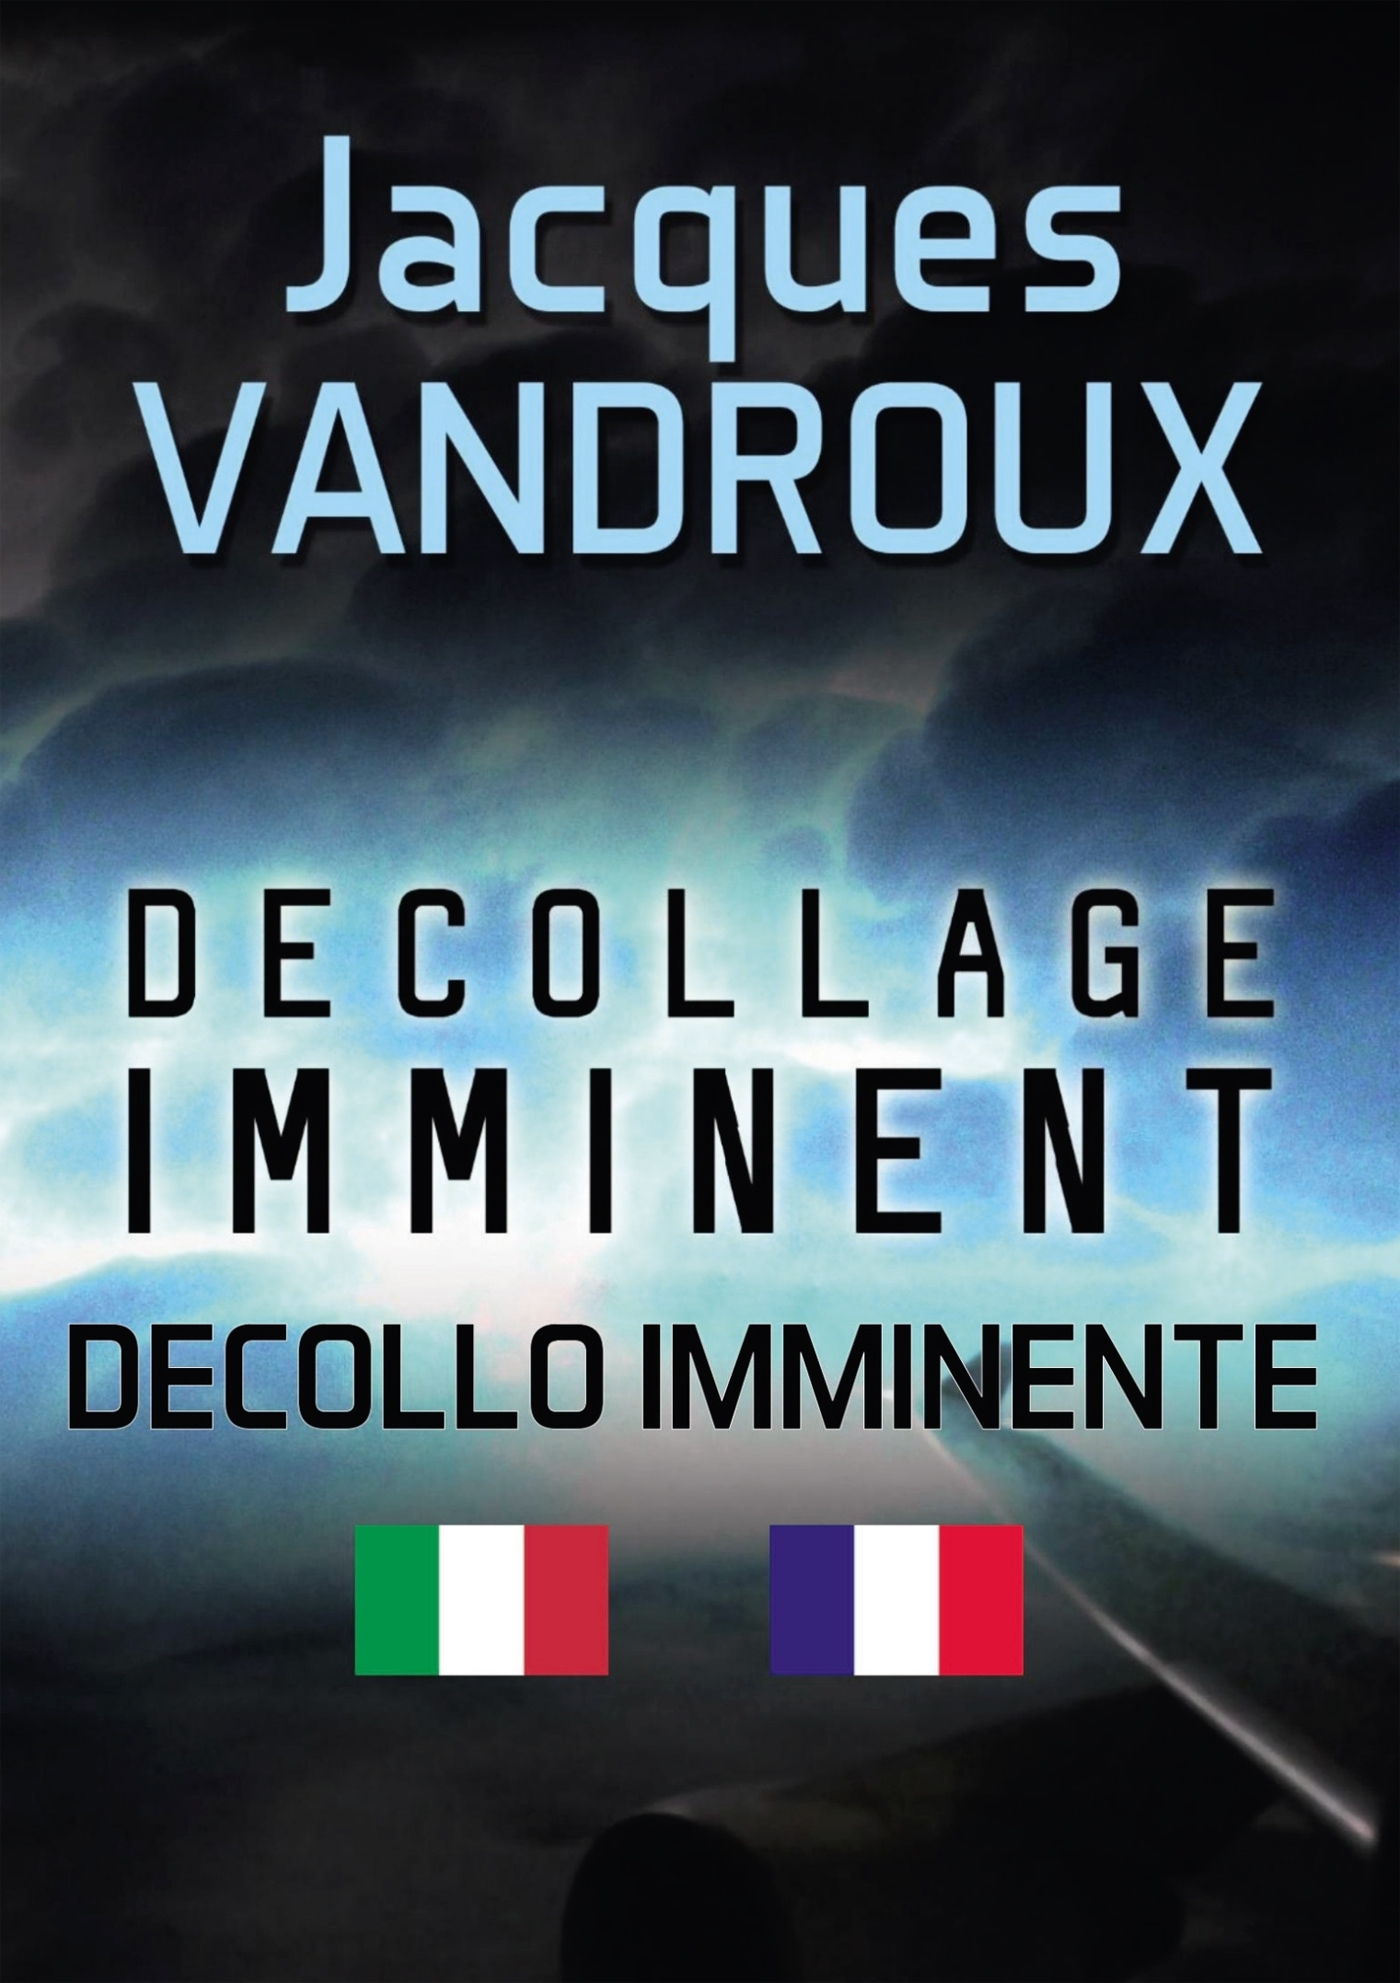 DECOLLAGE IMMINENT - DECOLLO IMMINENTE